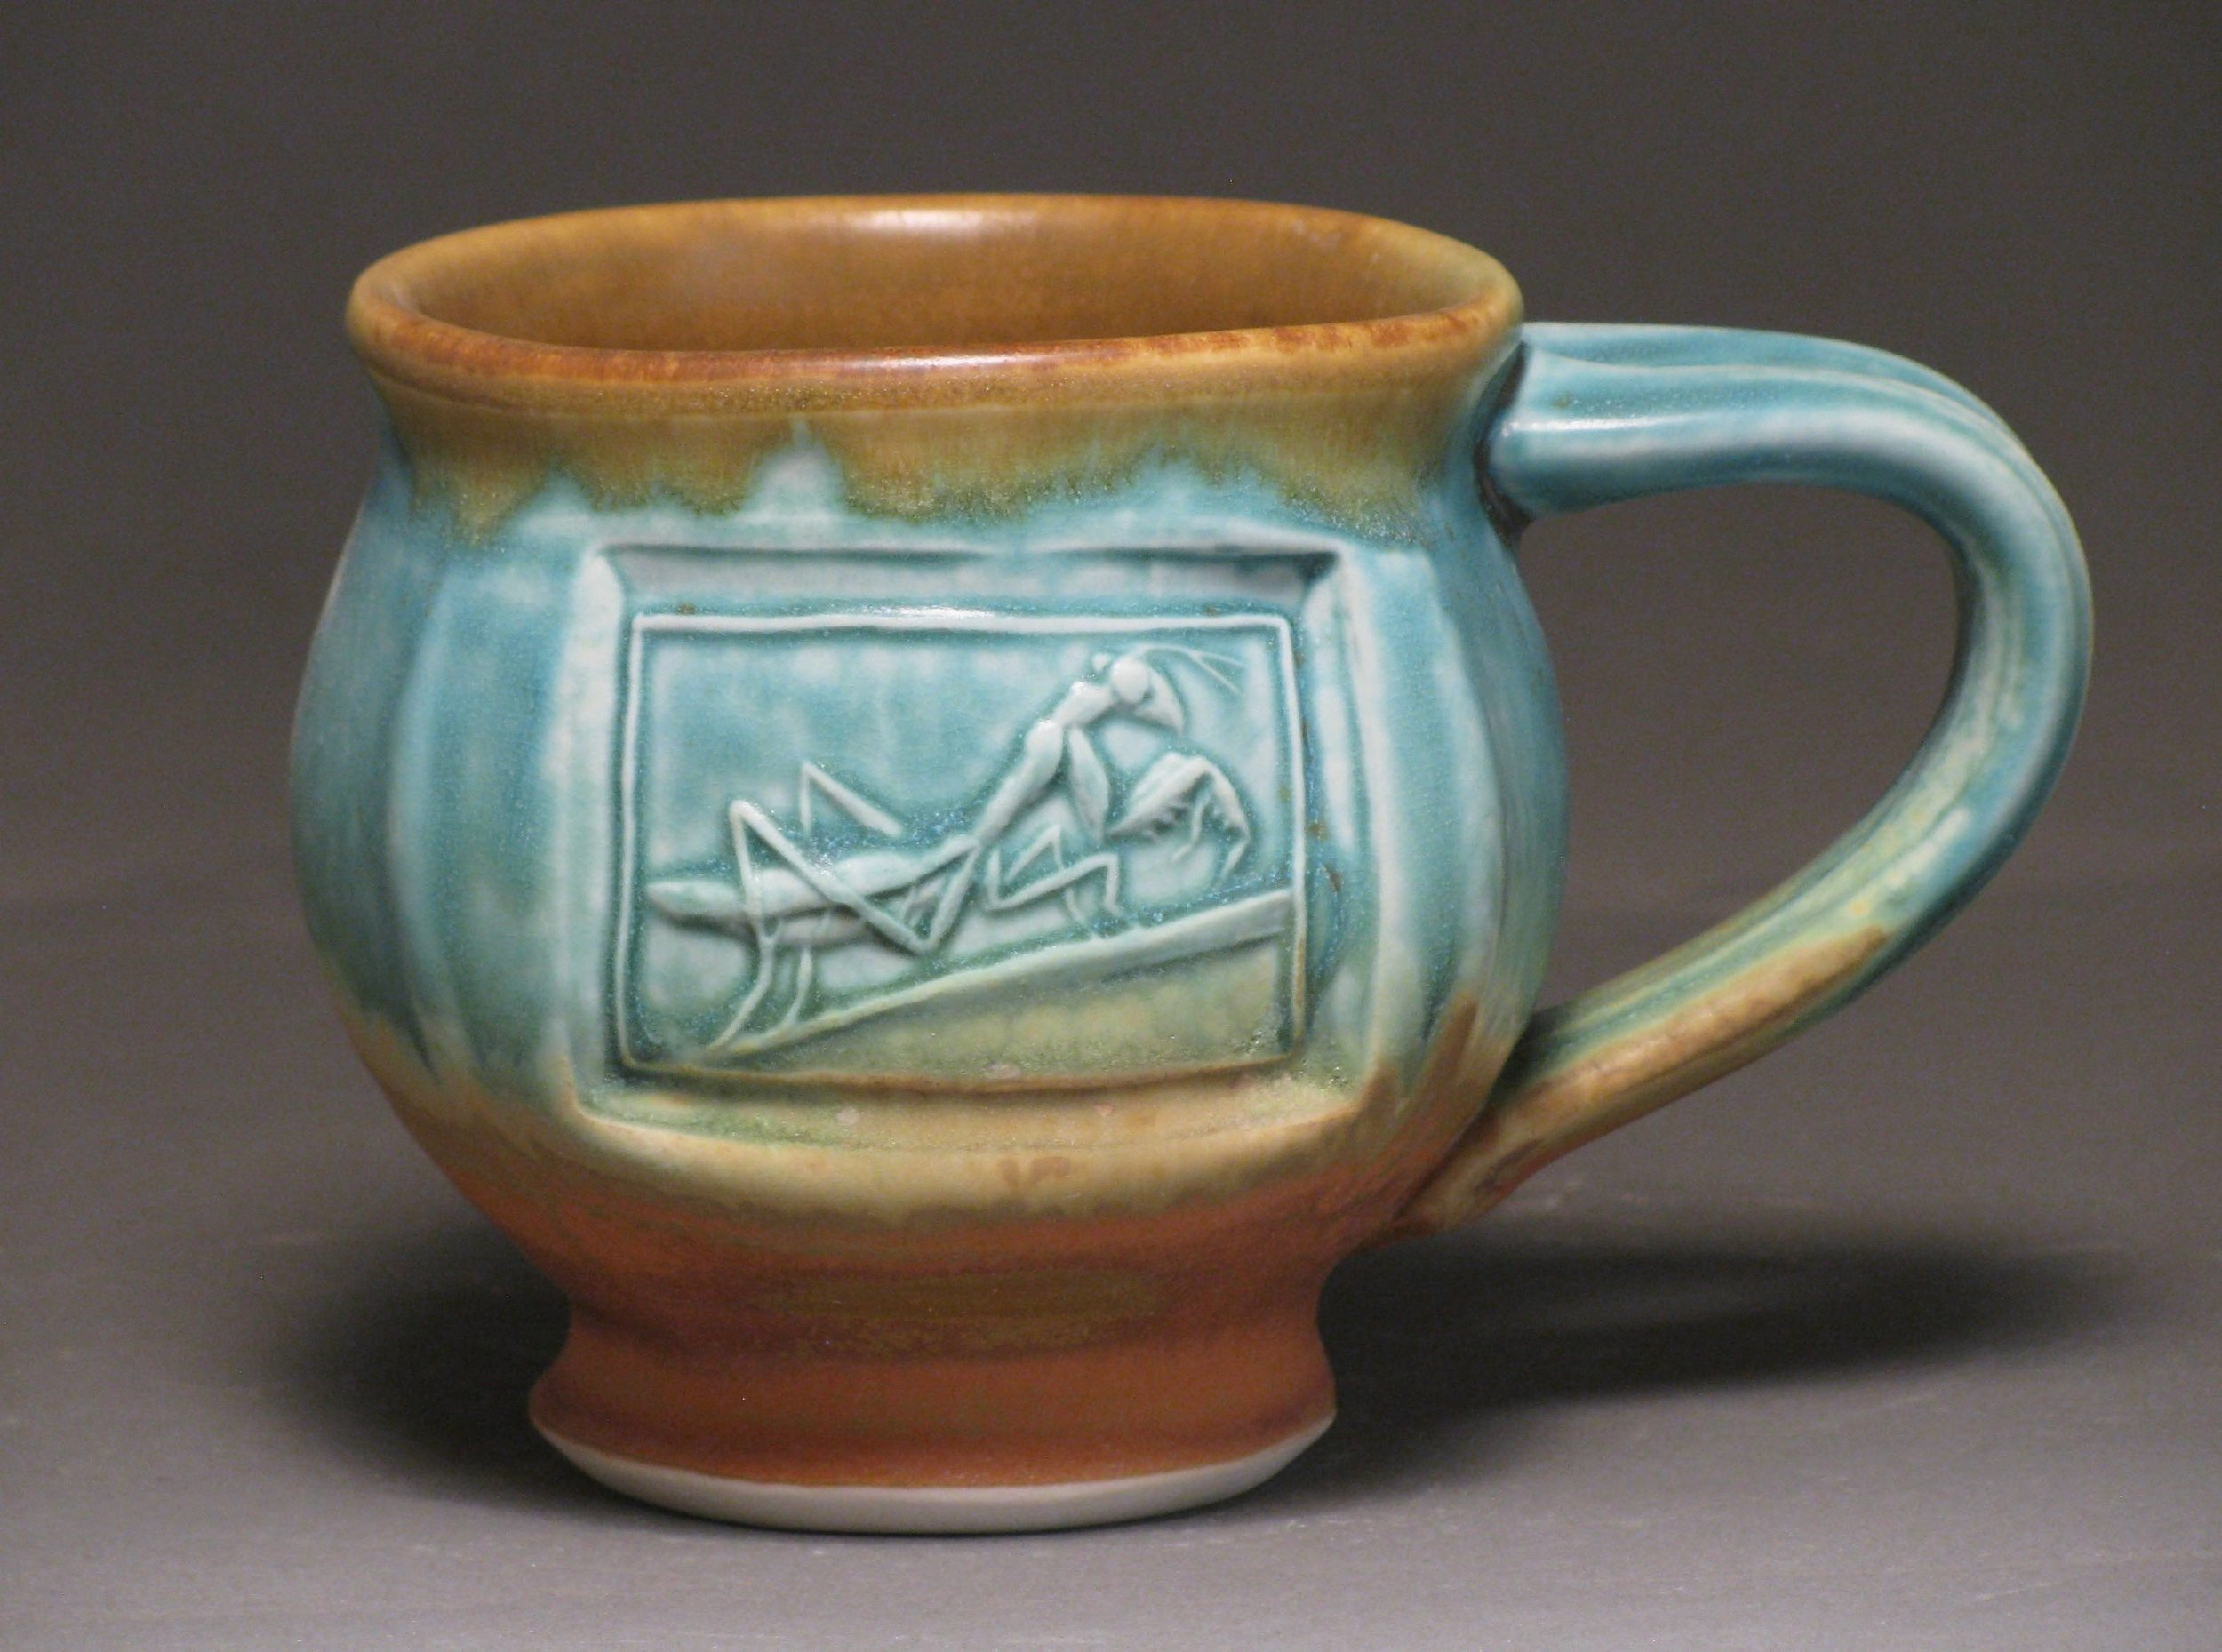 Mantis  Glazes: Matte turquoise and matte rust